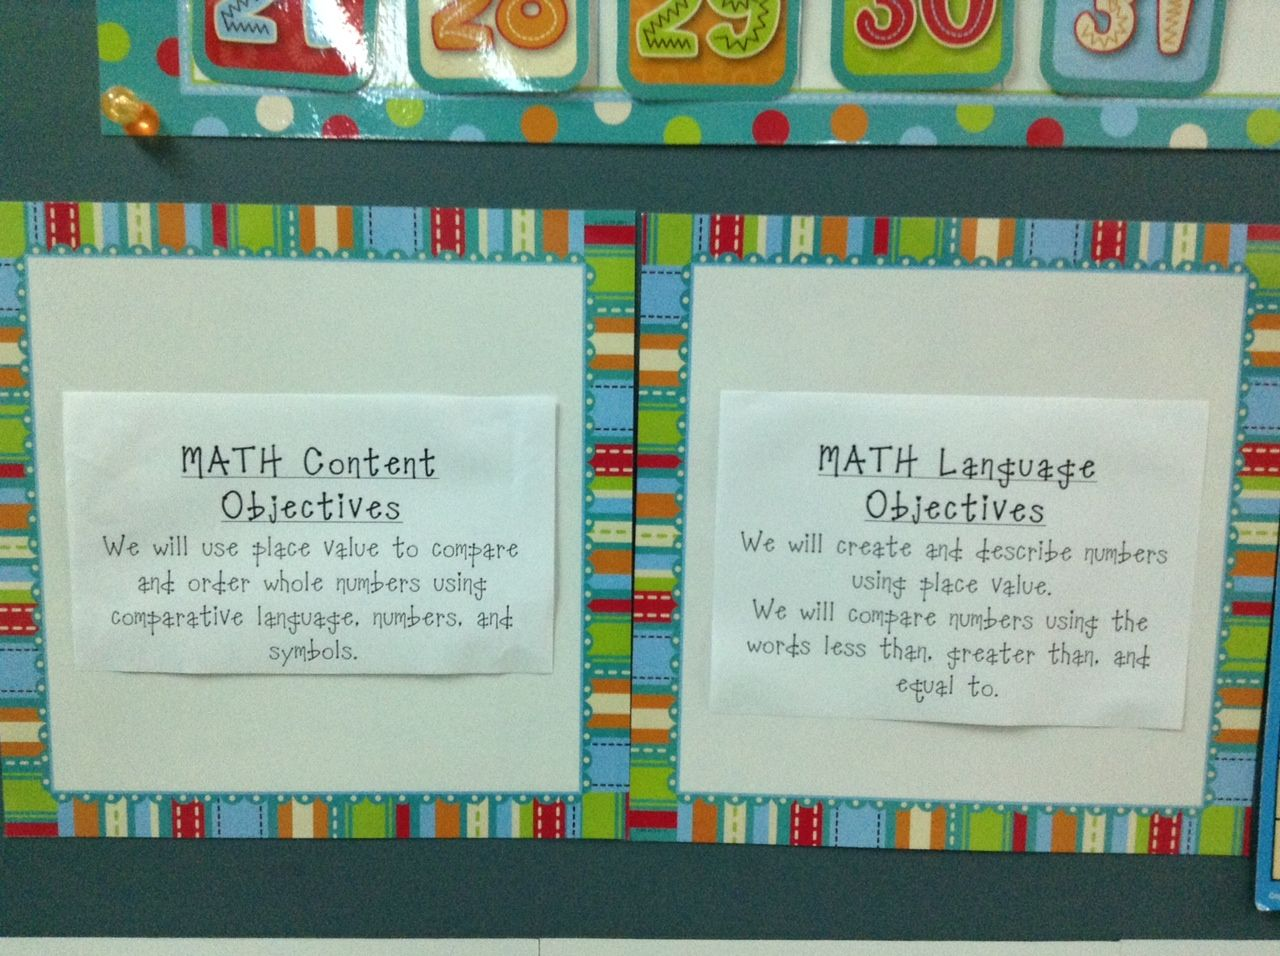 Content and Language Objectives must be posted in our classrooms ...